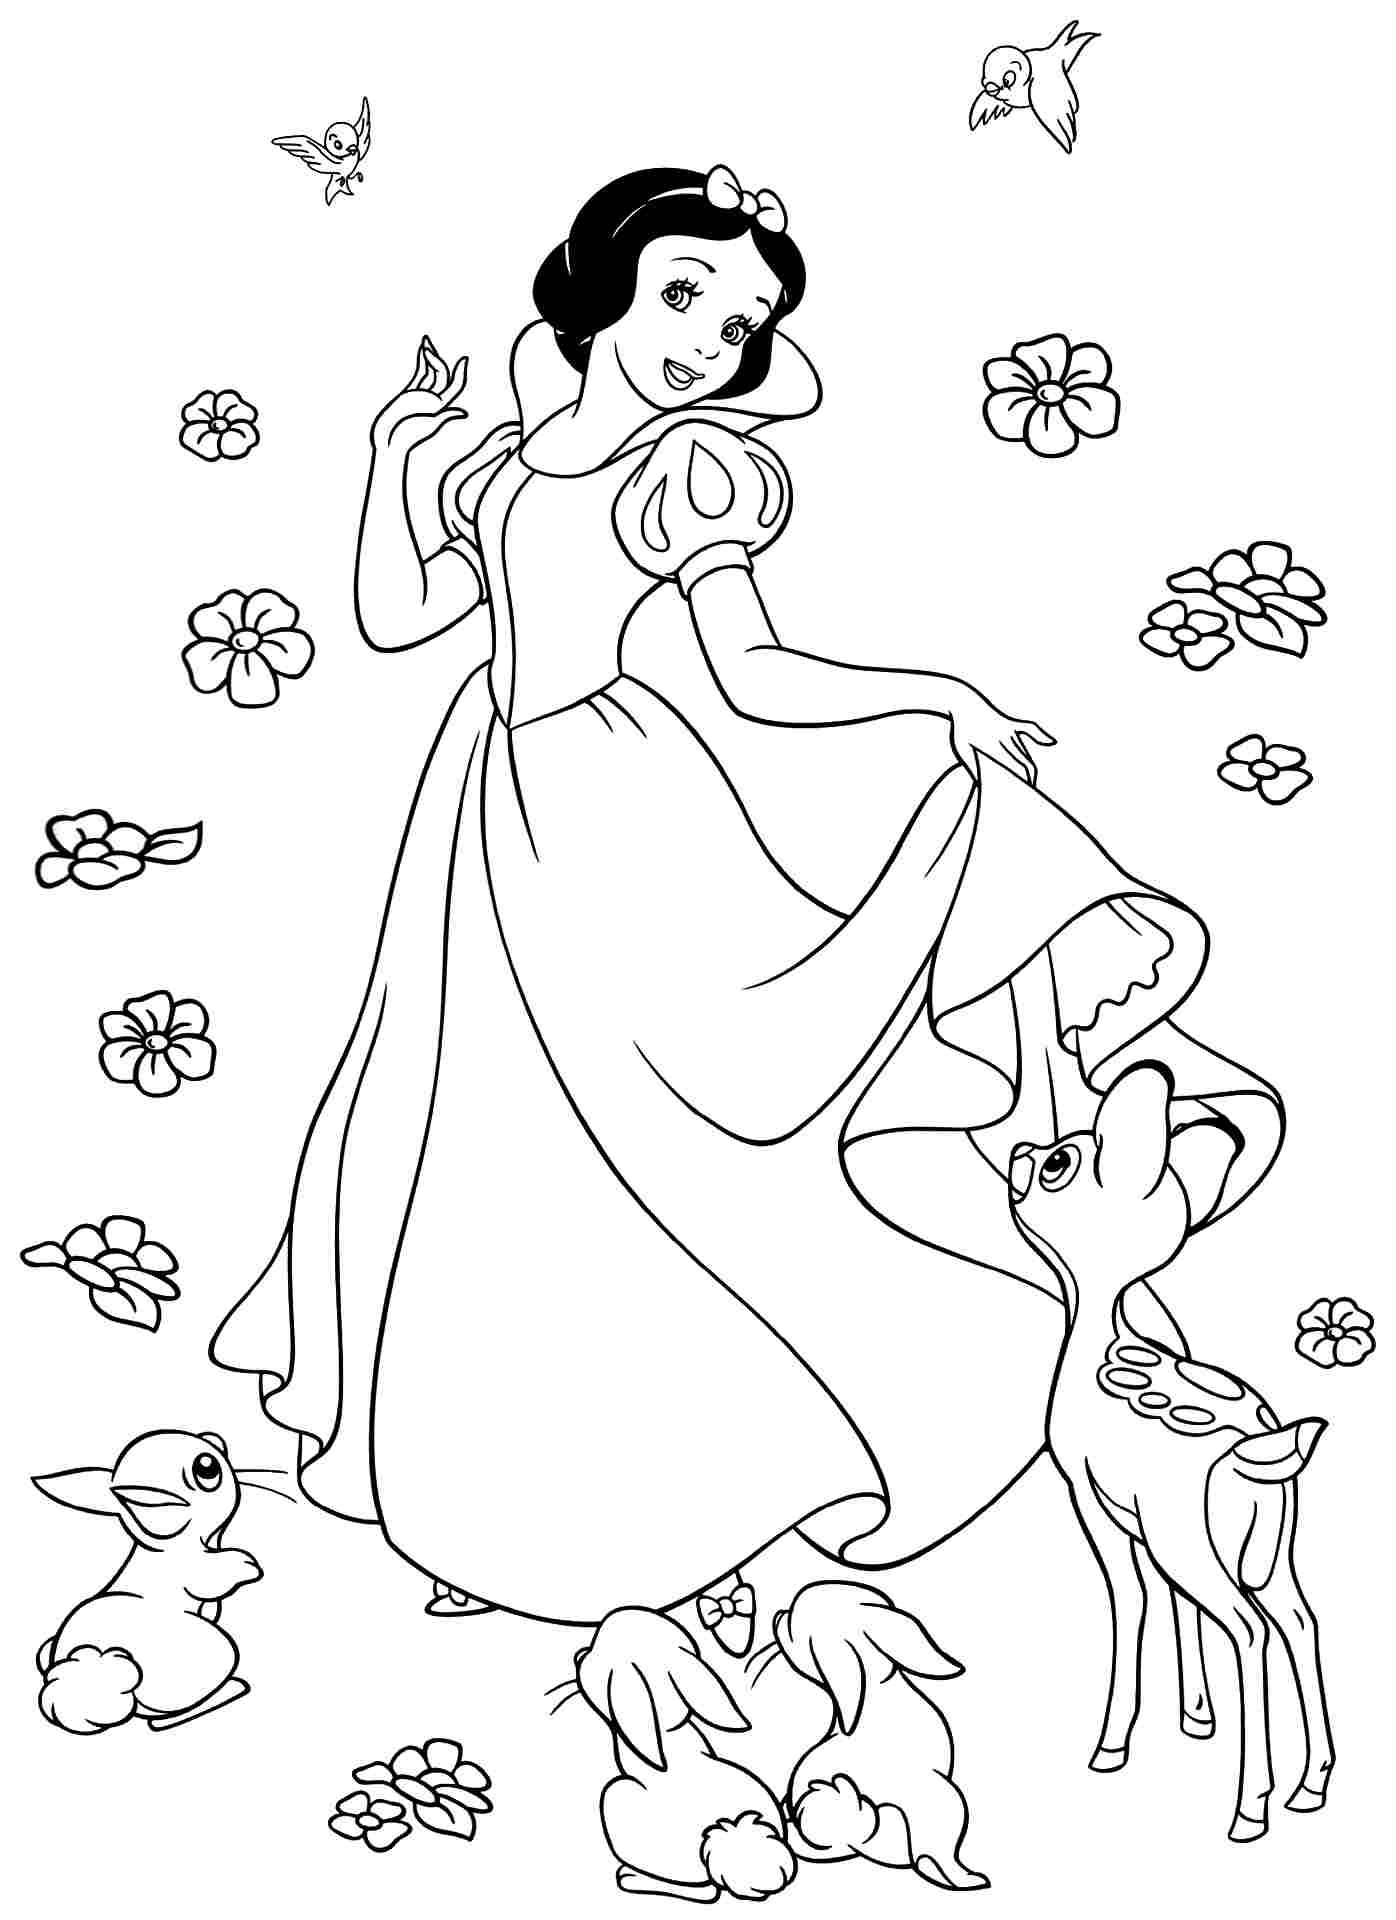 snow white for coloring snow white color pages to print activity shelter for coloring snow white